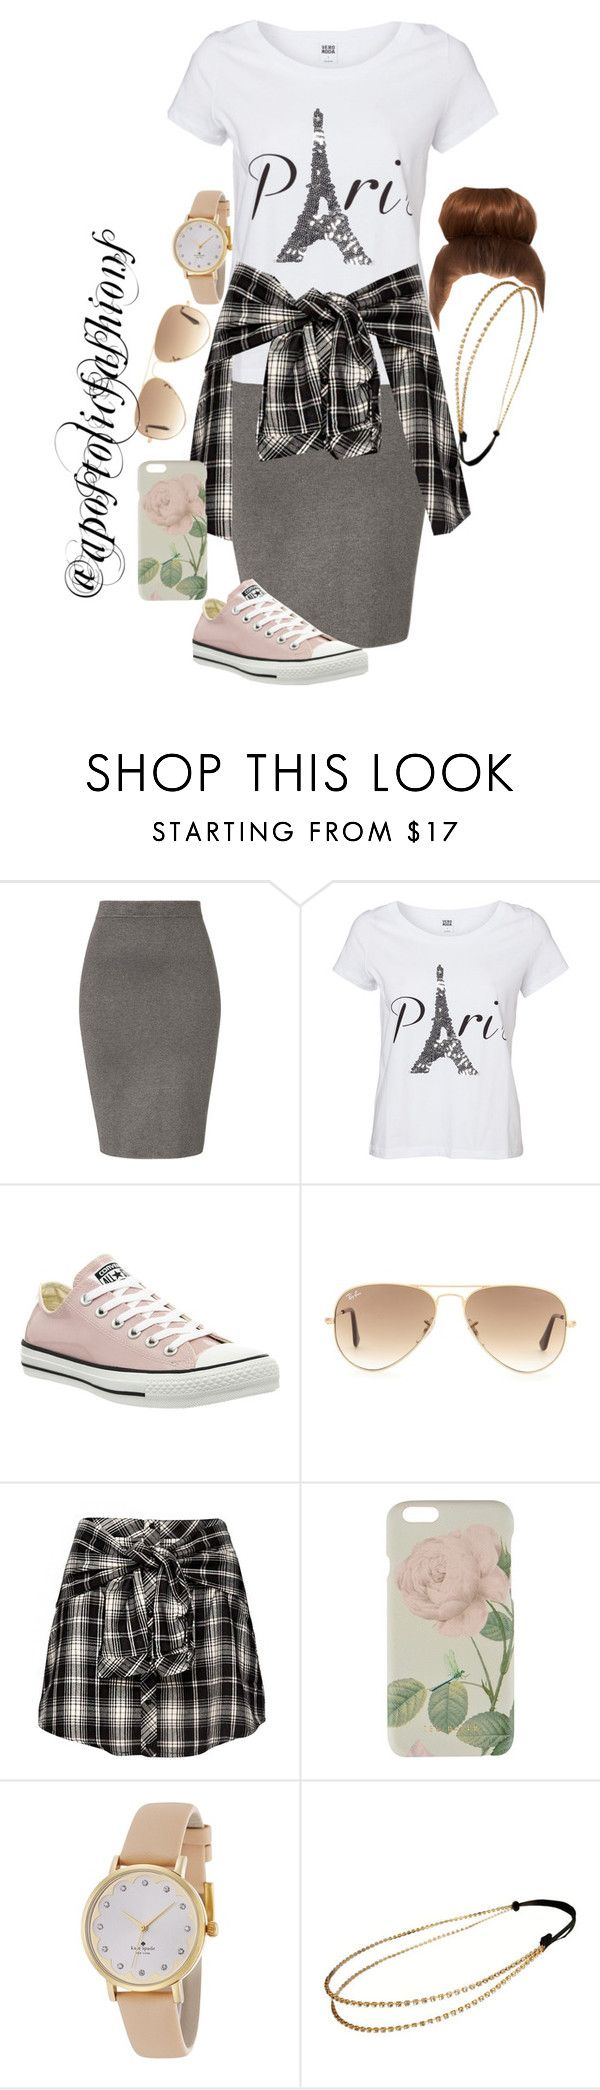 """Apostolic Fashions #1111"" by apostolicfashions ❤ liked on Polyvore featuring Jonathan Simkhai, Vero Moda, Converse, Ray-Ban, Ted Baker, Kate Spade and Chicnova Fashion"